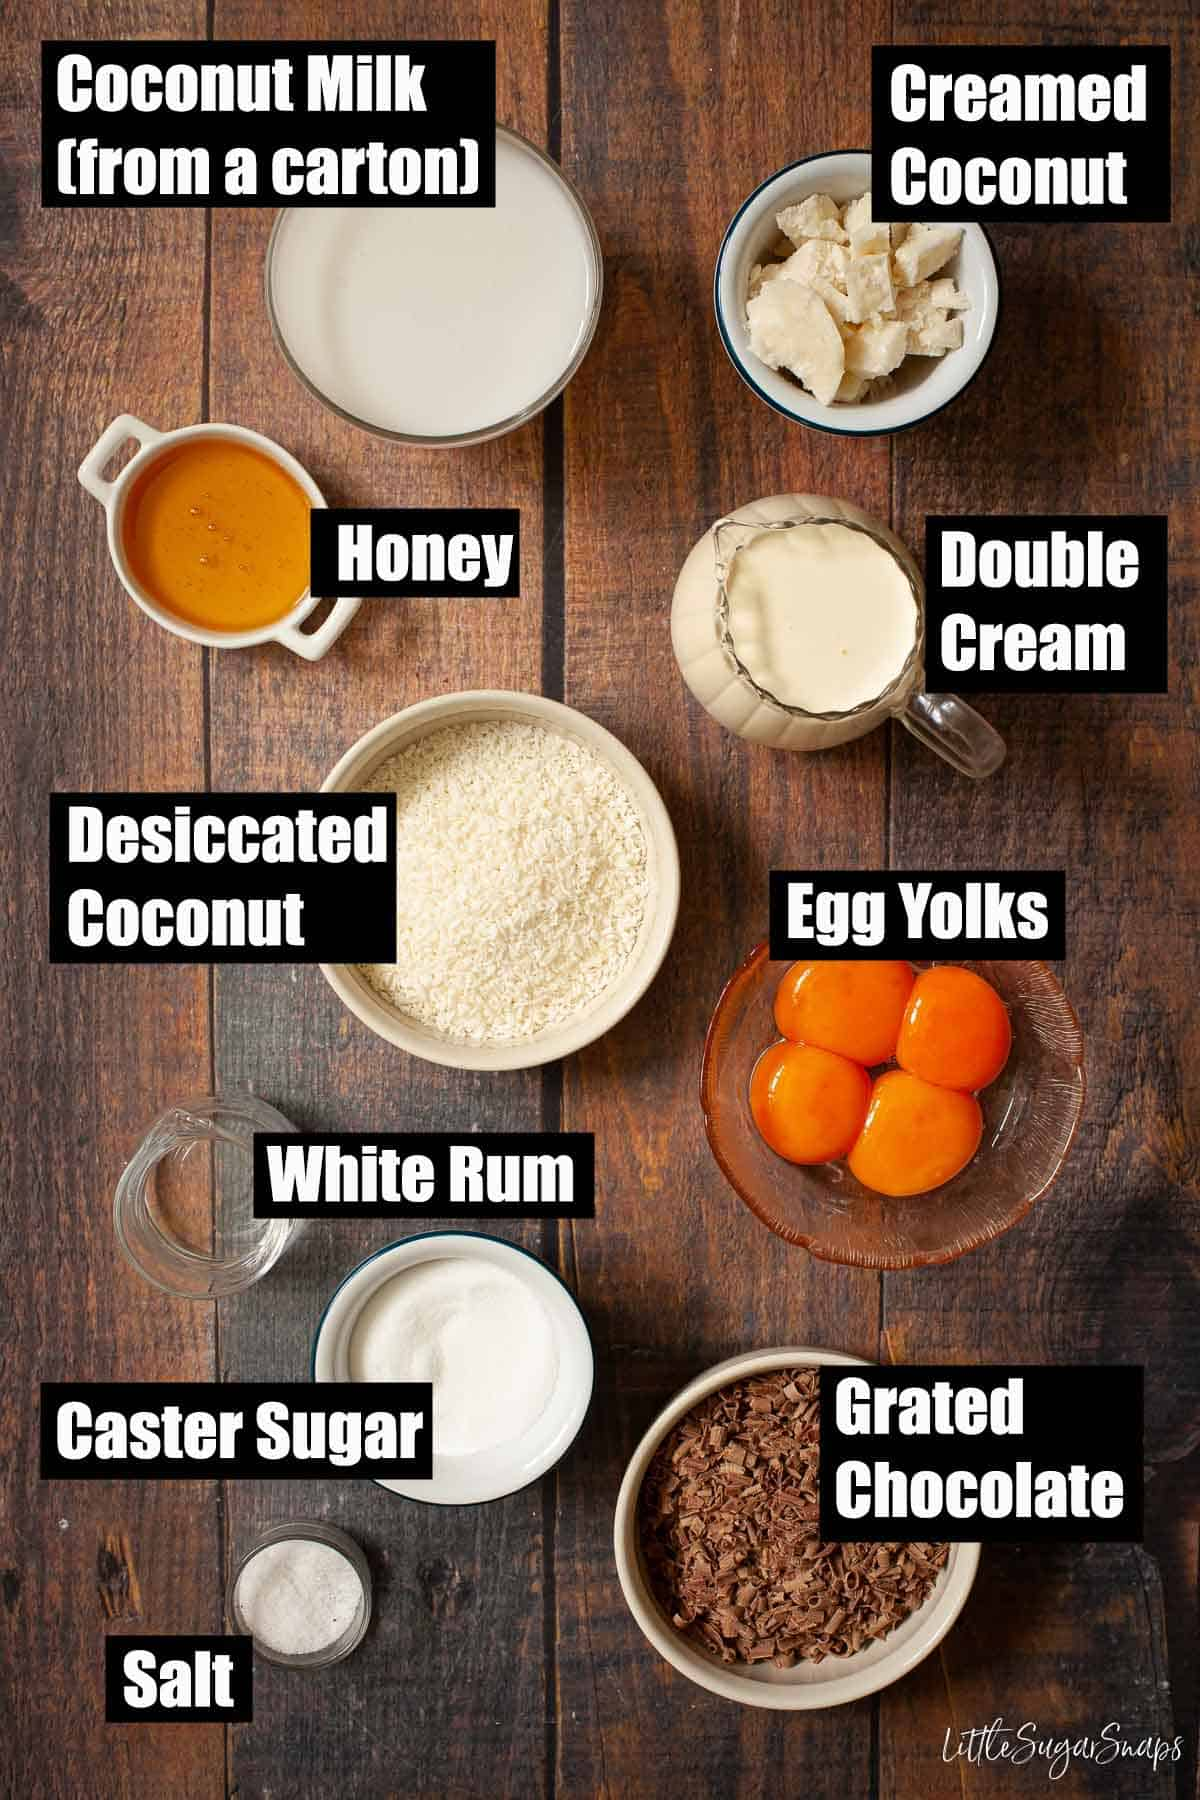 Ingredients for coconut and chocolate ice cream with text overlay